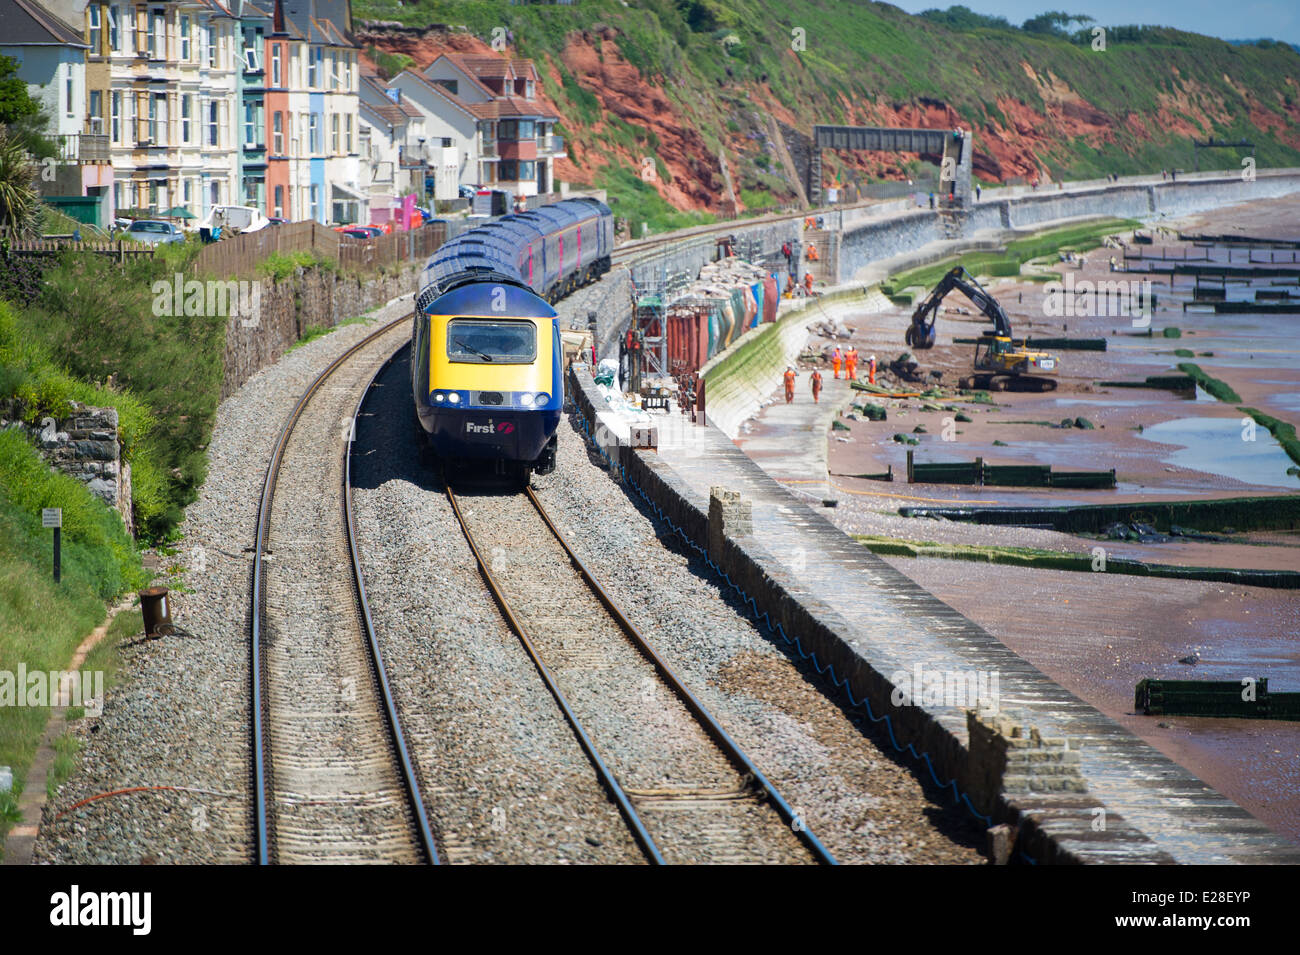 A First Great Western train arriving at Dawlish station in England, UK - Stock Image